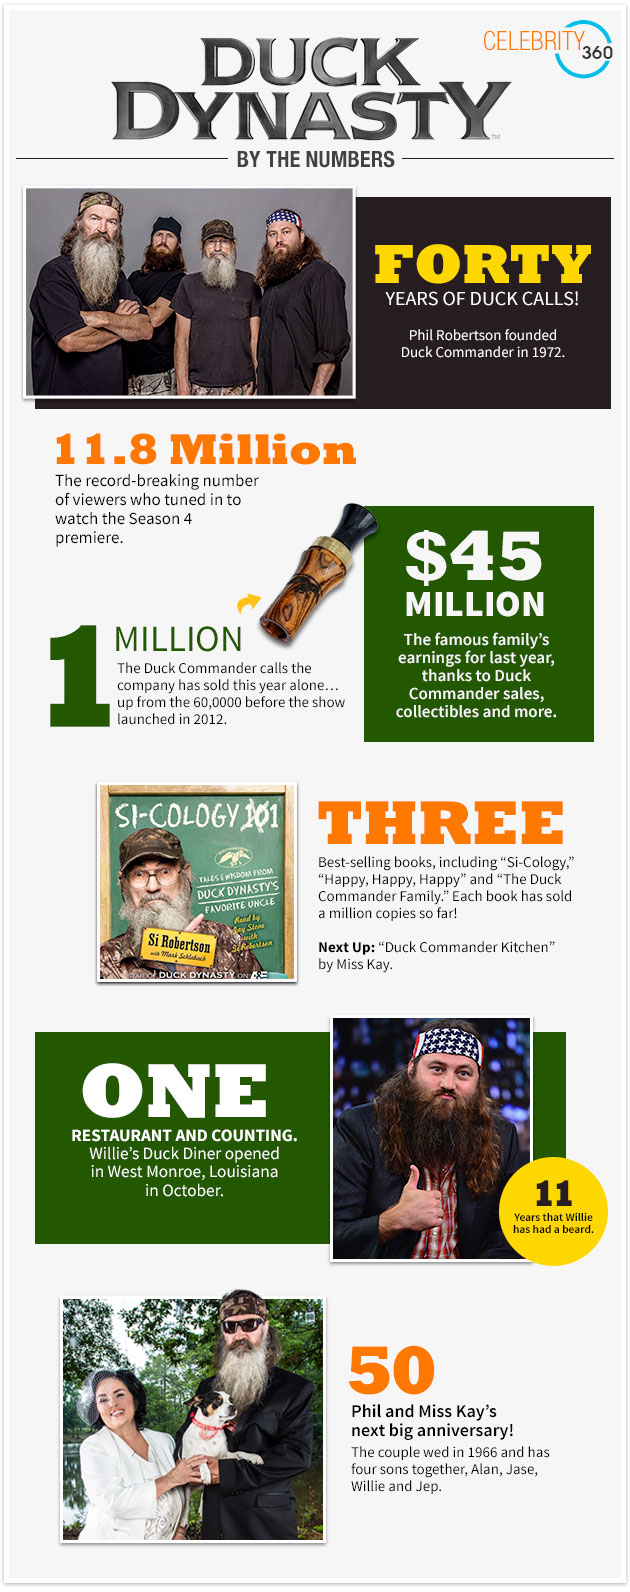 duck-dynasty-by-the-numbers